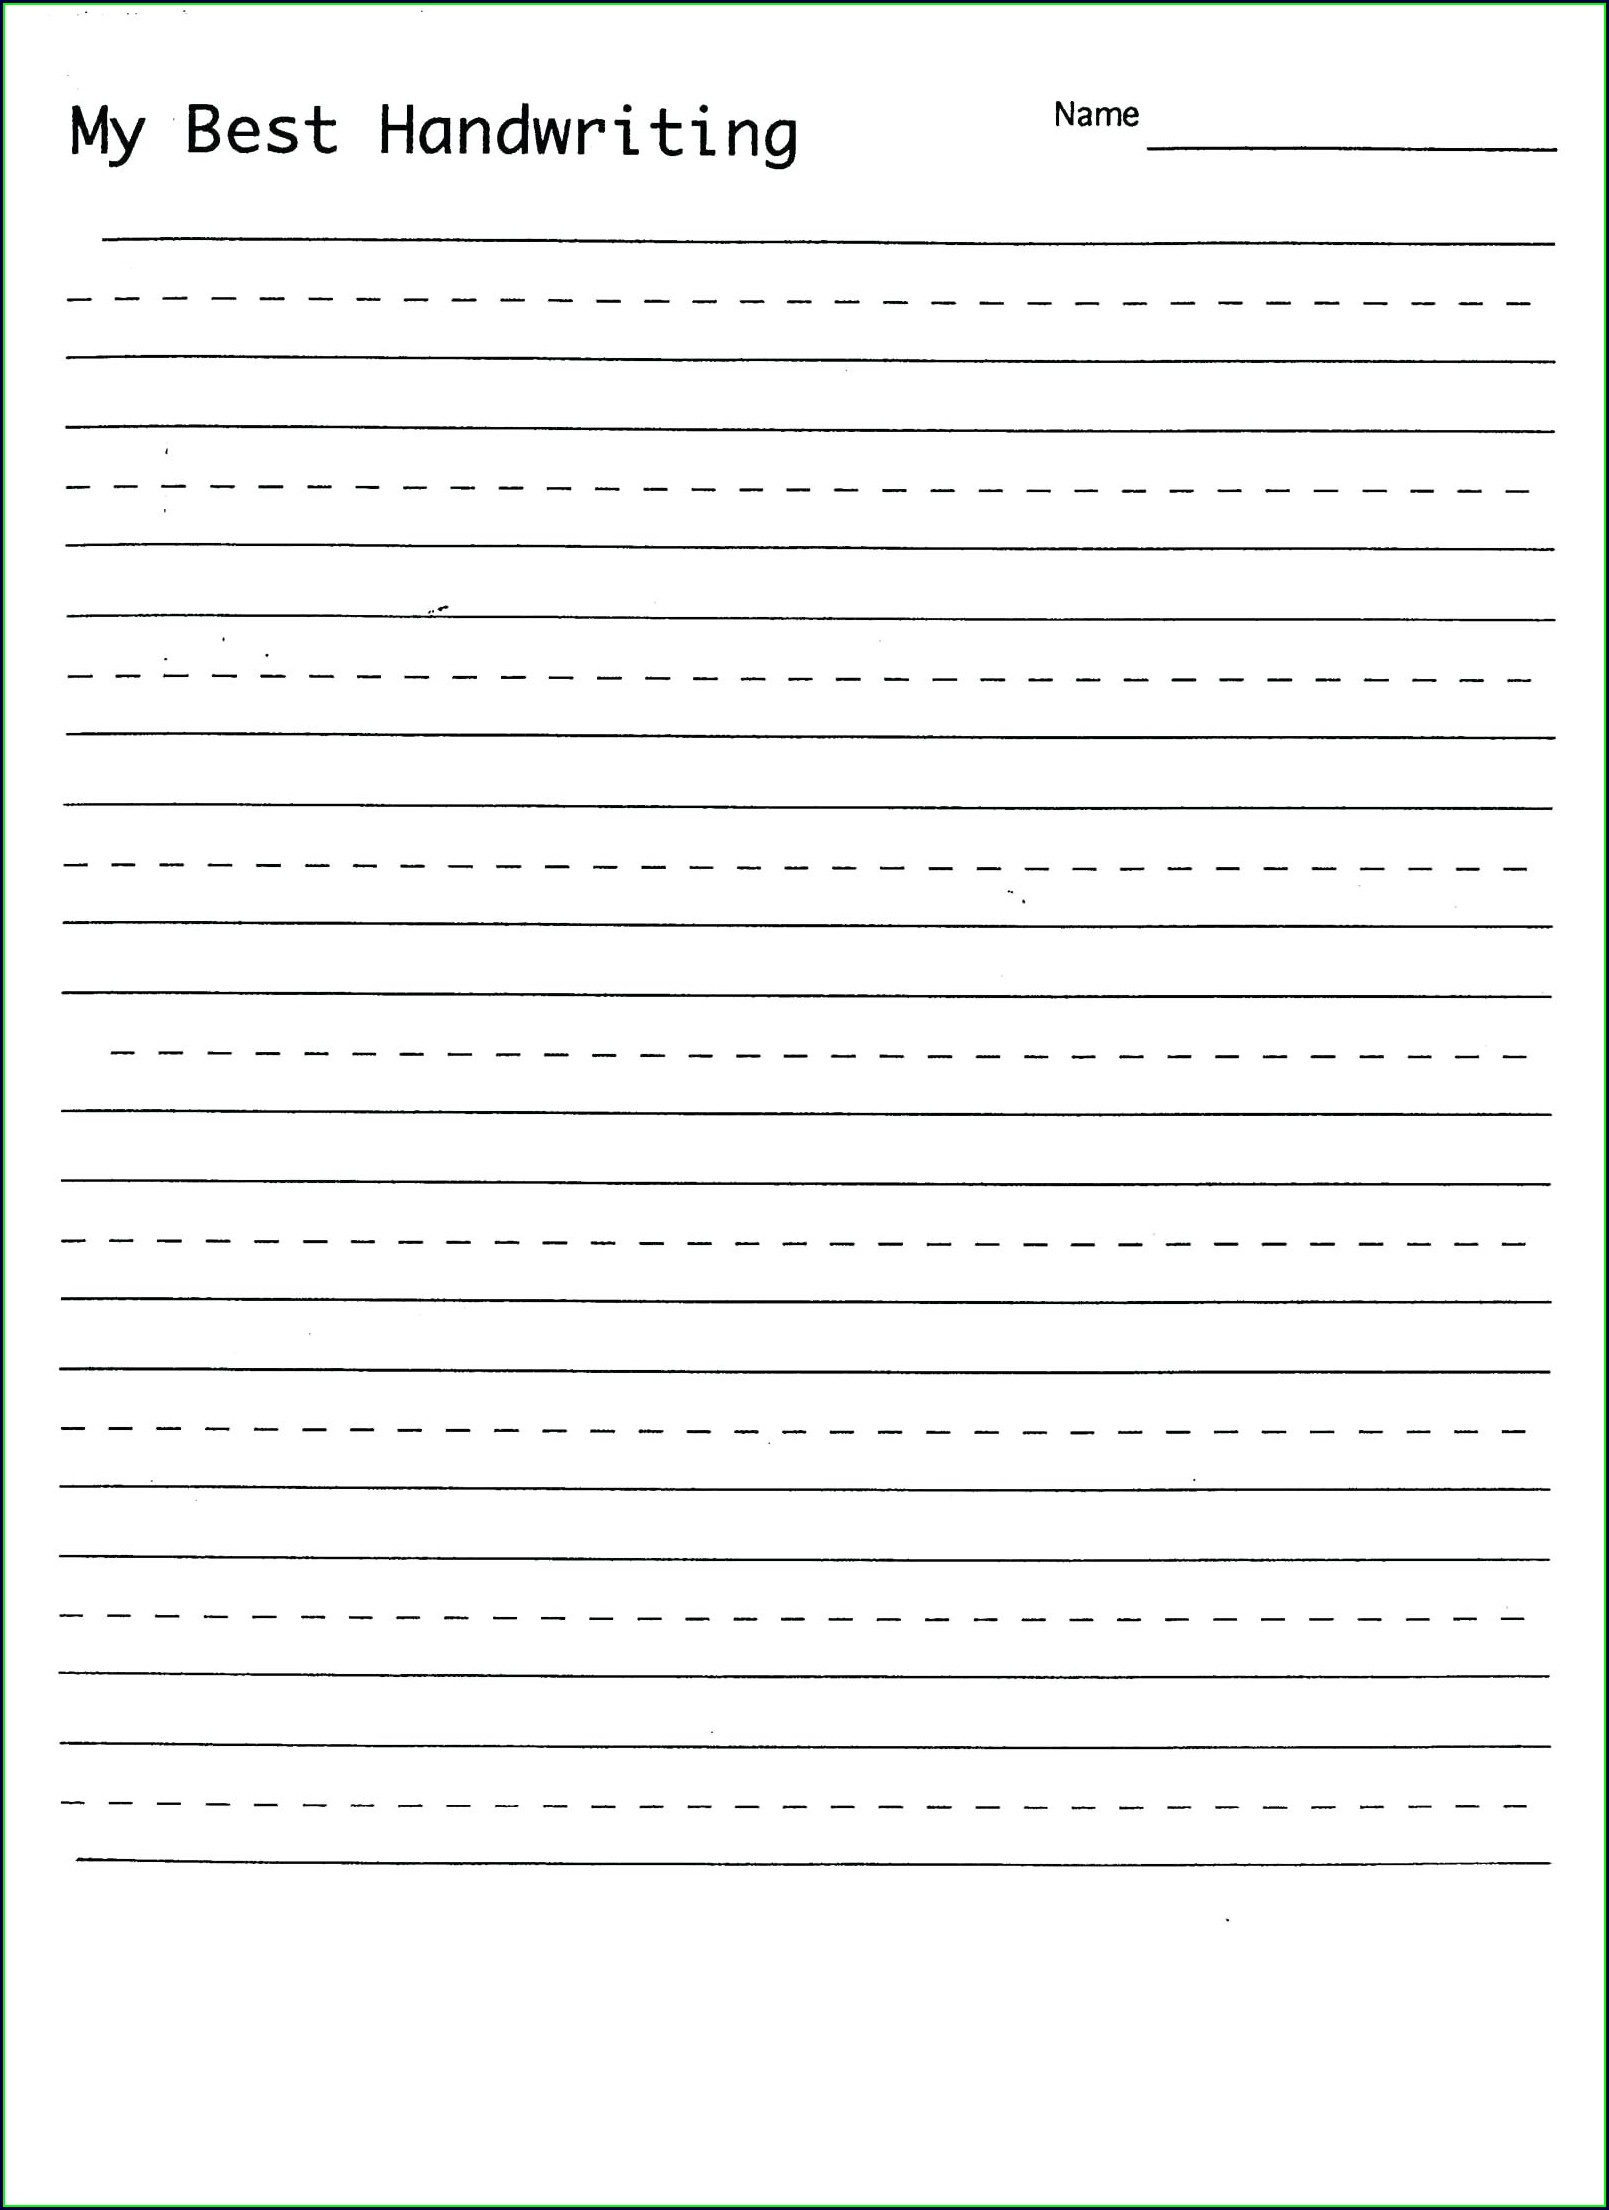 Handwriting Cursive Writing Practice Sheets For Adults